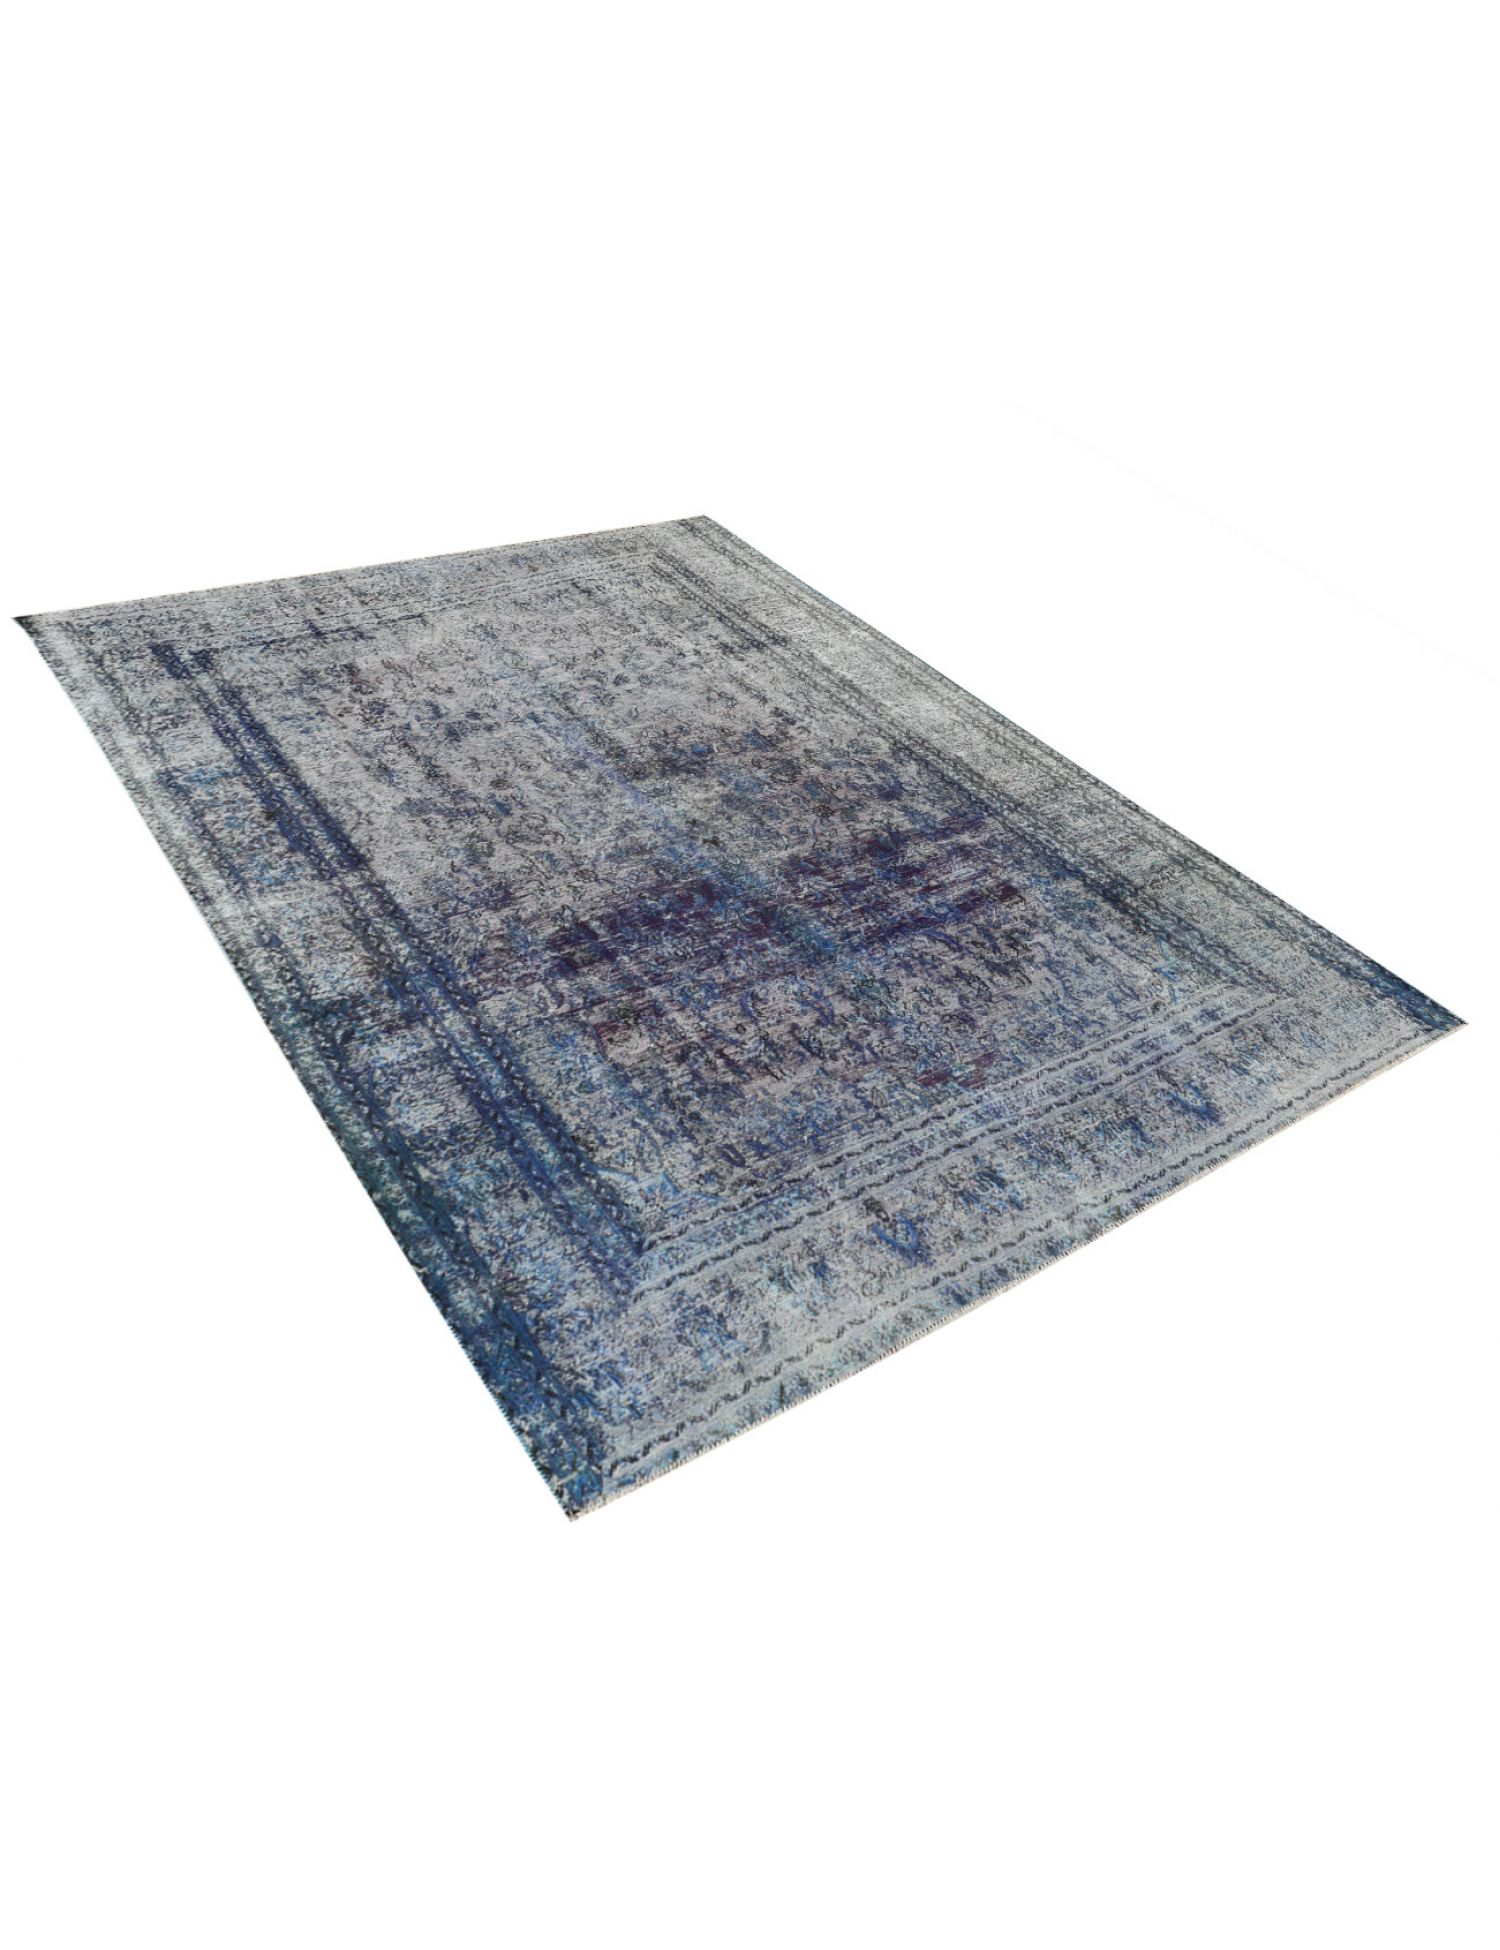 Vintage Carpet  blue <br/>360 x 280 cm